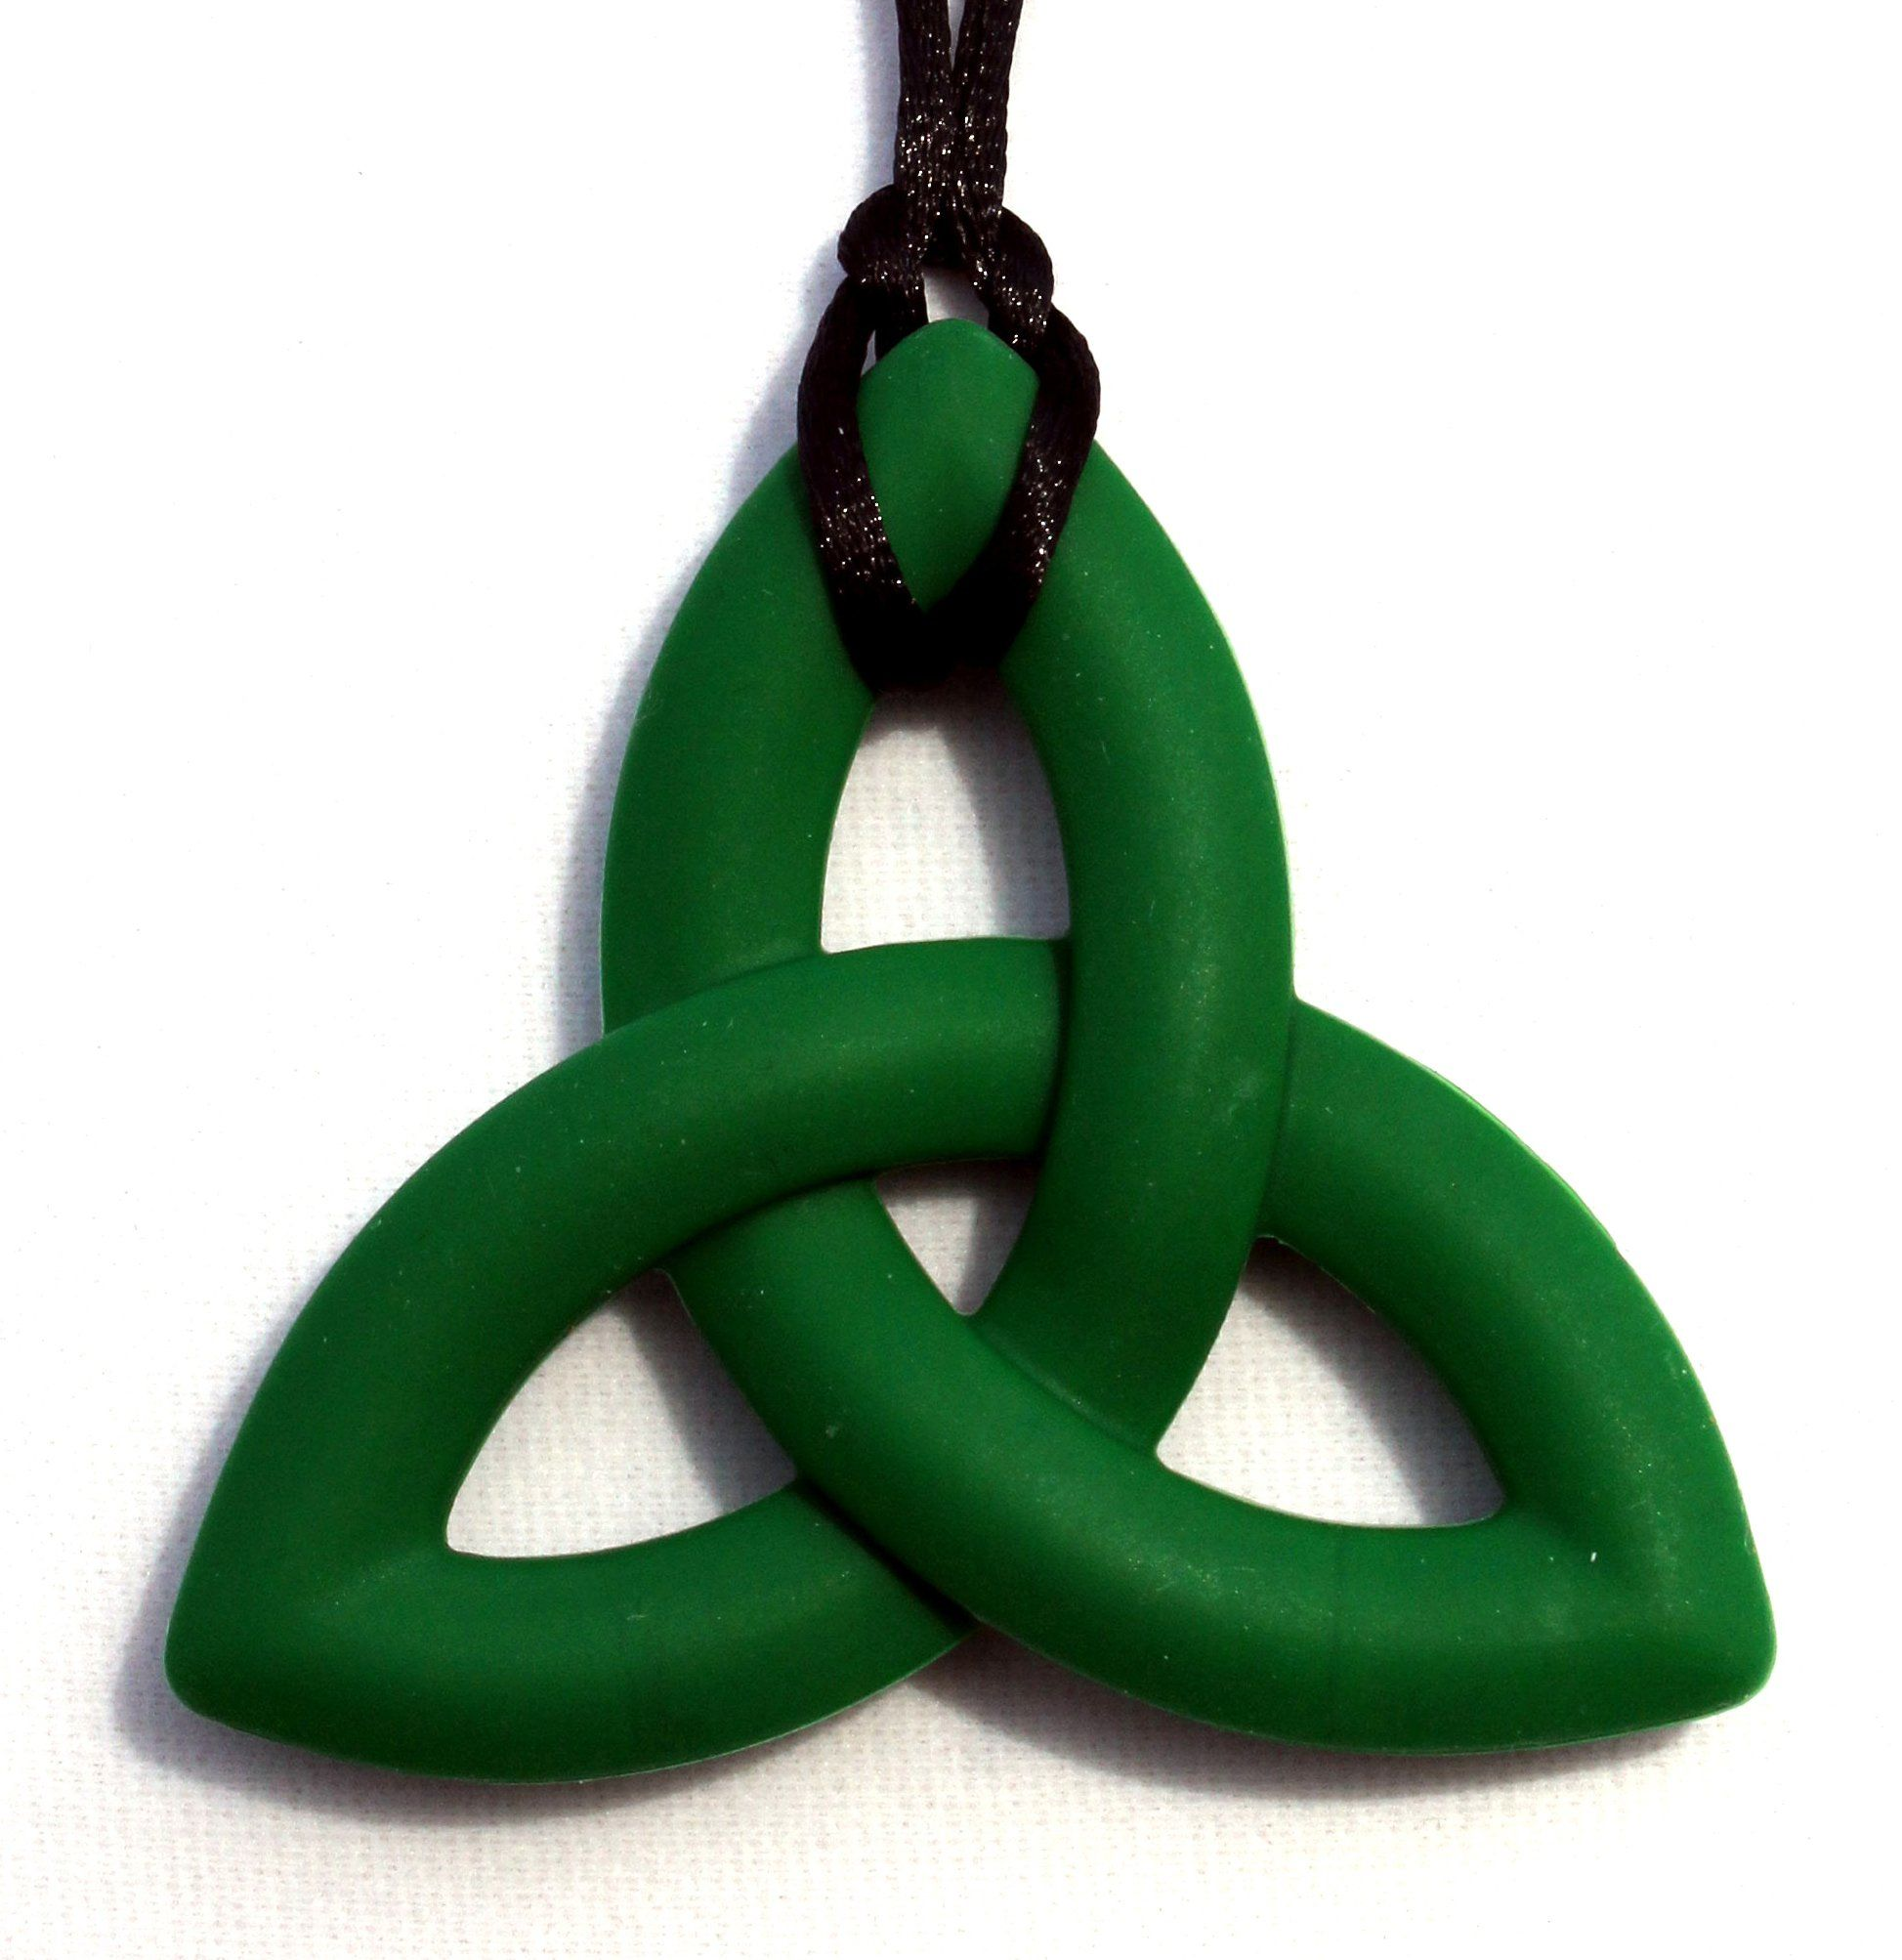 Peacemaker jewelry trinity knot silicone teething pendant necklace peacemaker jewelry trinity knot silicone teething pendant necklace green mozeypictures Gallery